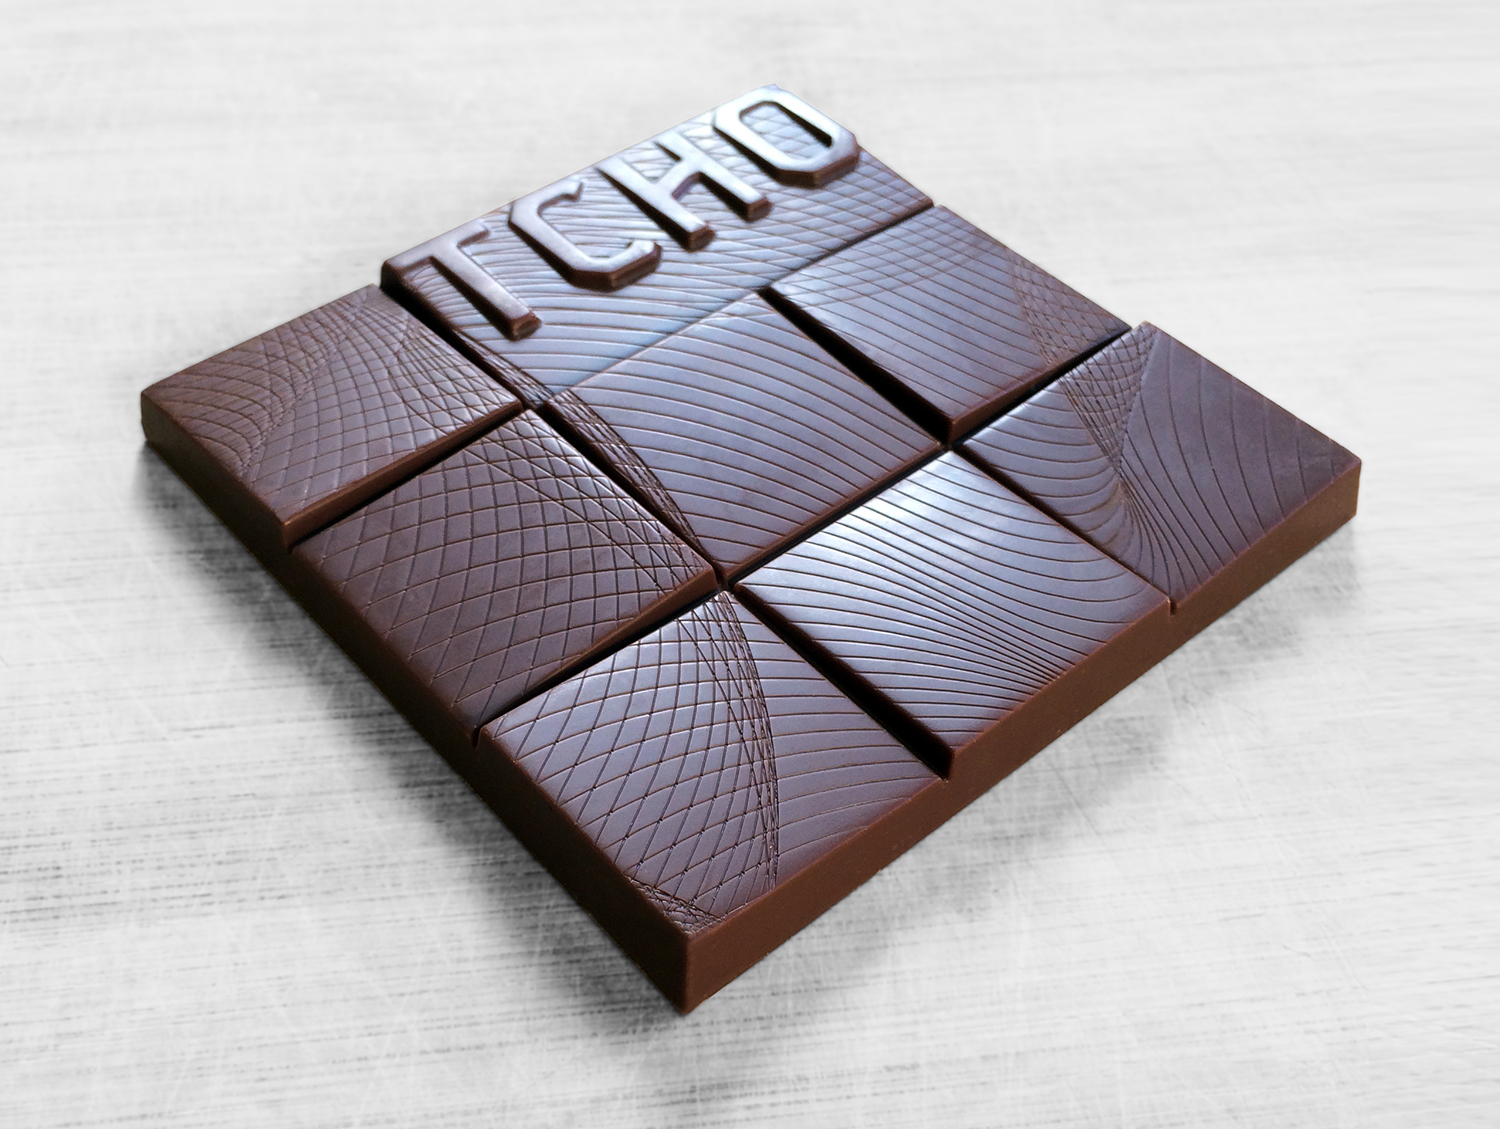 TCHO's new inclusion chocolate bar design. By strategically elevating portions of the existing bar grid, Andrea and I created the new 'erupted' mold design. Designed and collaborated with  Andrea Faucett  .